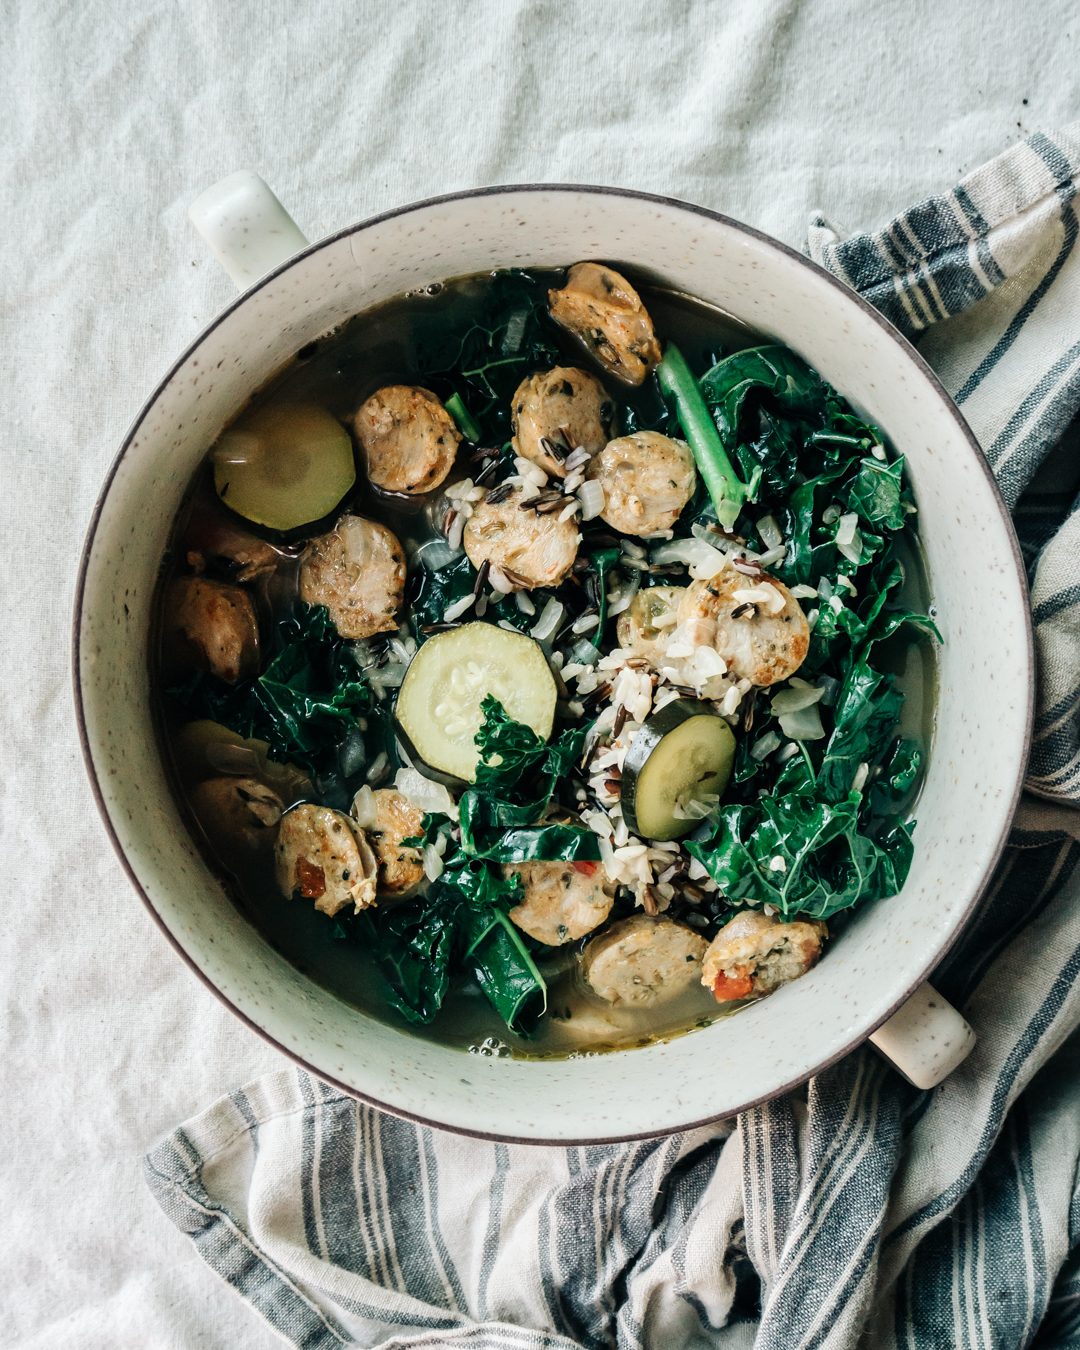 Zucchini, Kale, Sausage & Wild Rice Soup with Fresh Garden Herbs